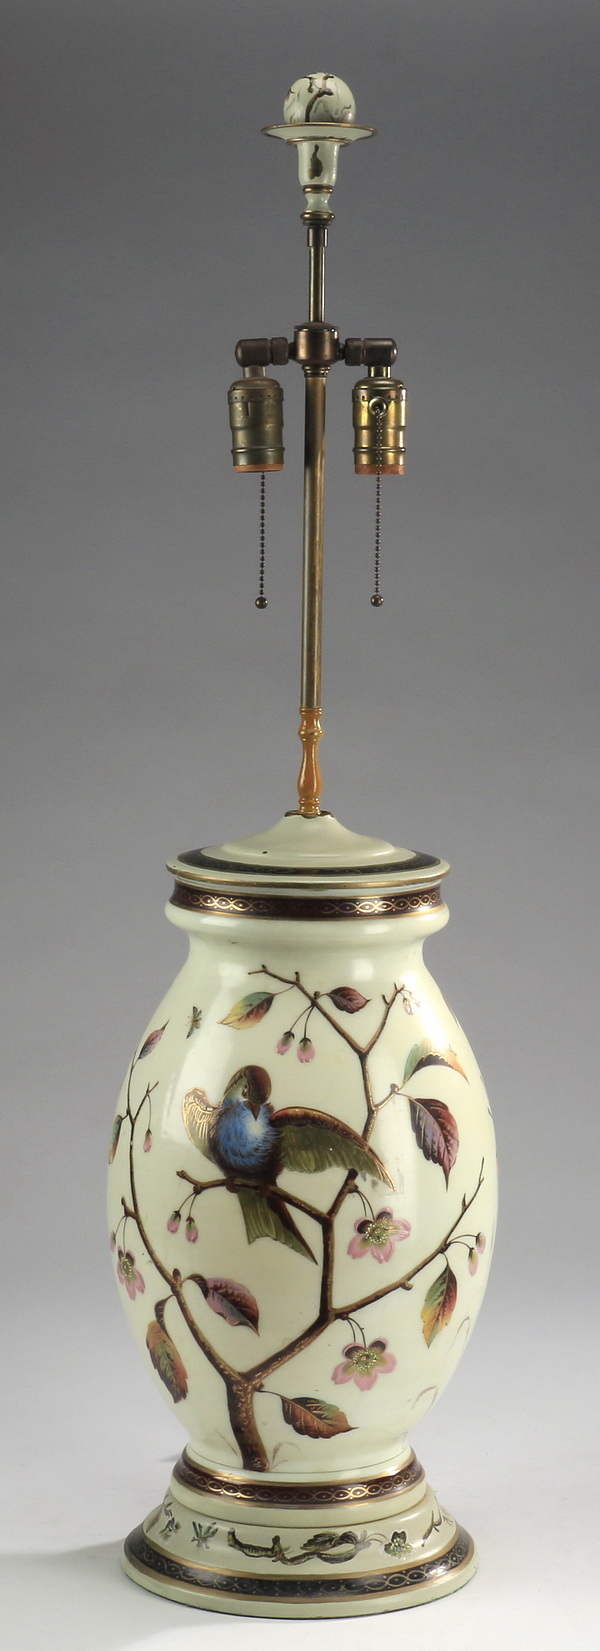 Continental tole lamp with birds, 38